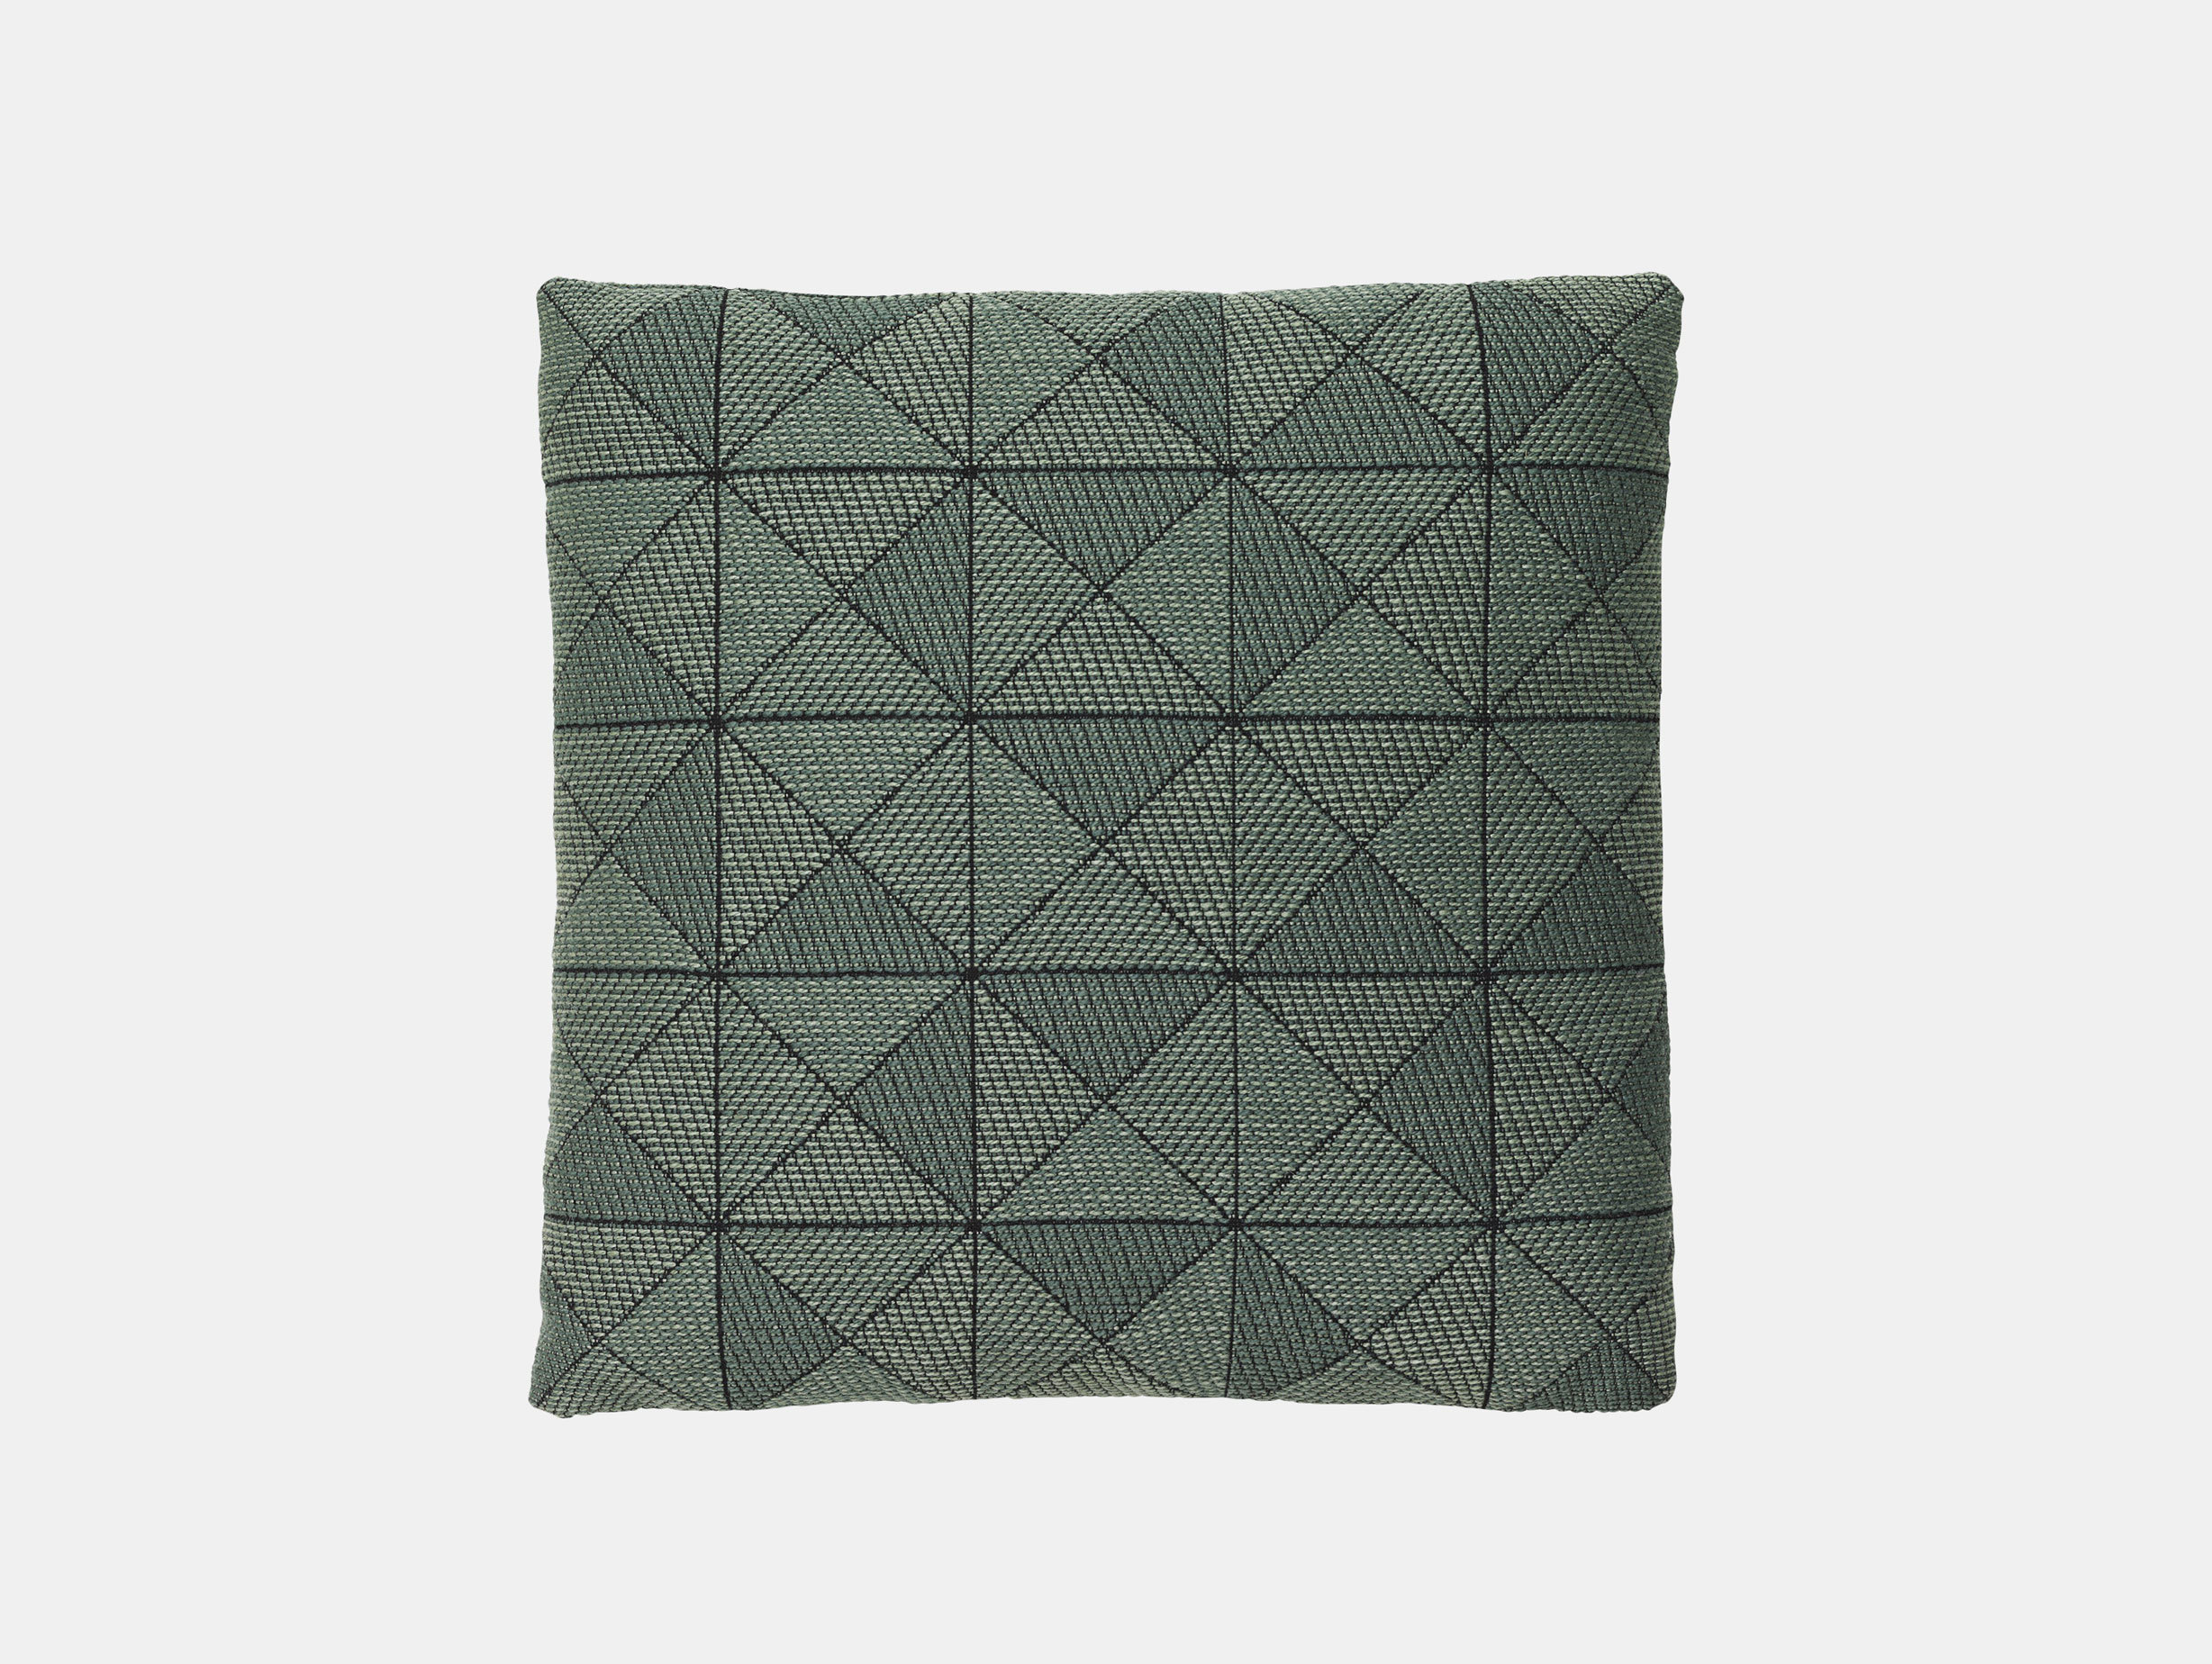 Tile Cushion image 4